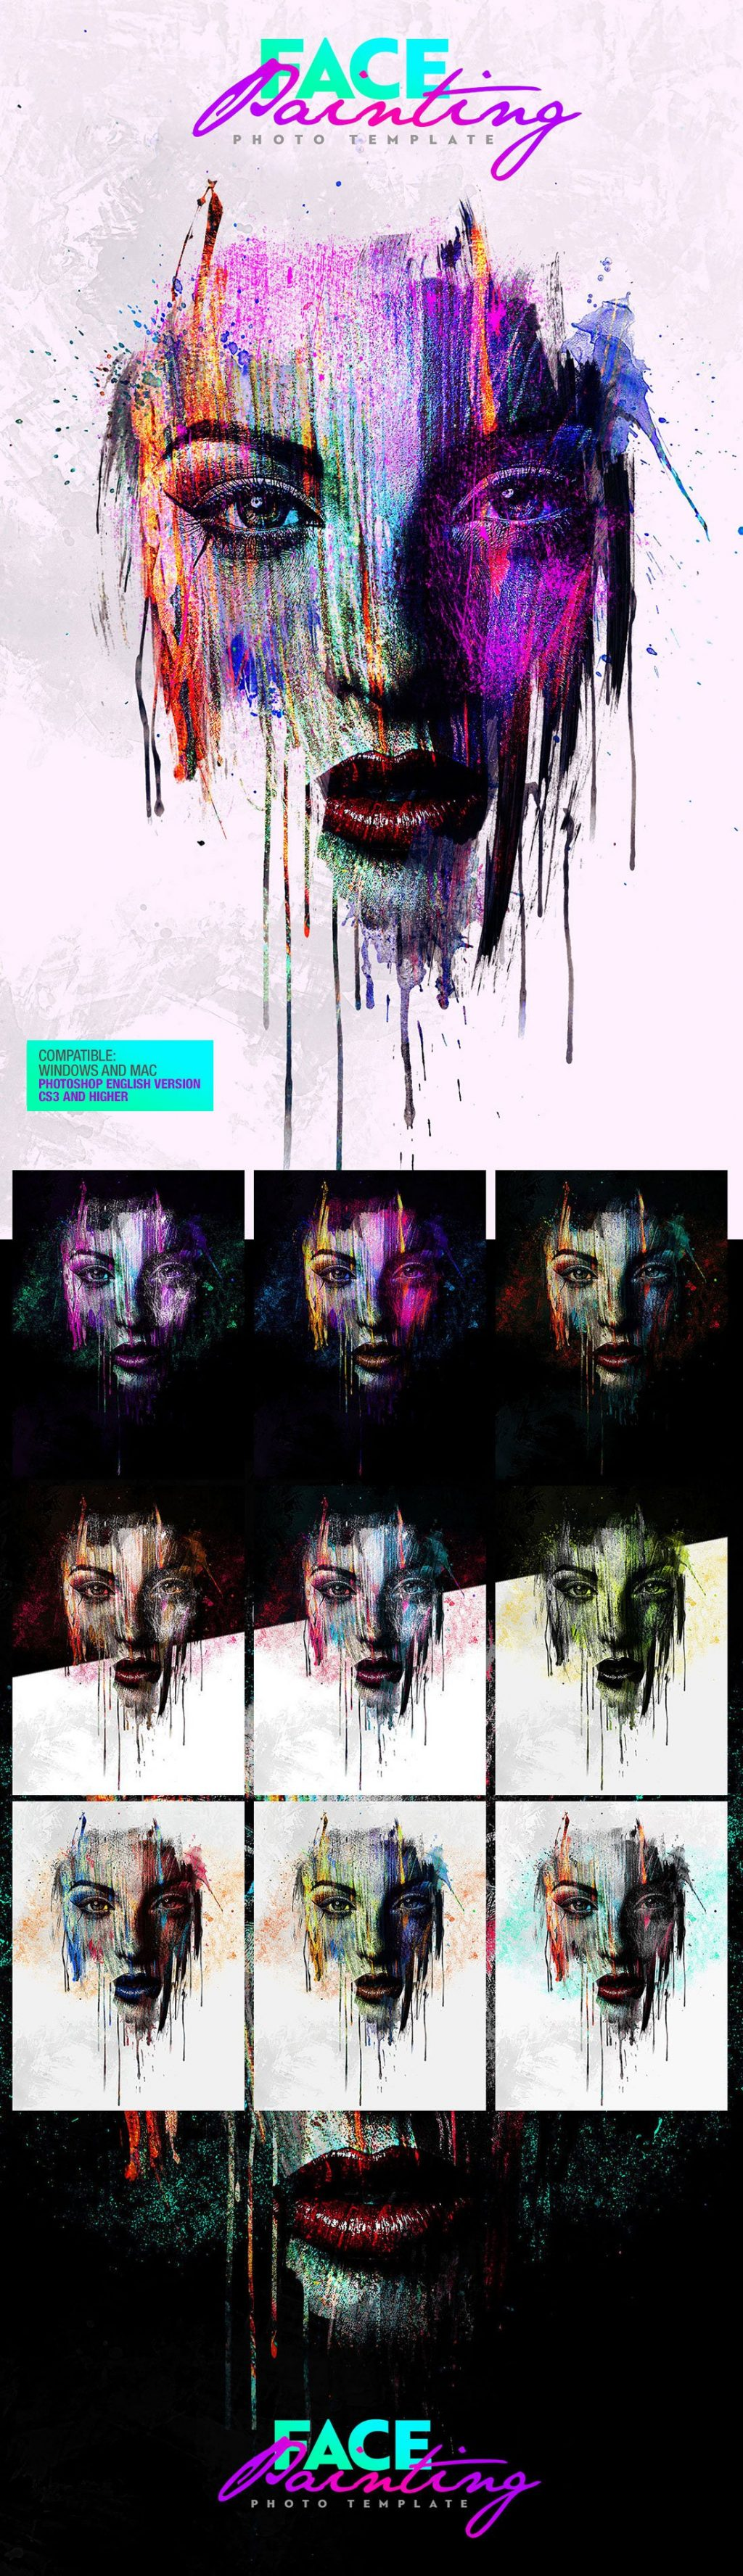 Photoshop Actions & Templates: Artistic Photo FX Bundle - face painting photo template design by amorjesu